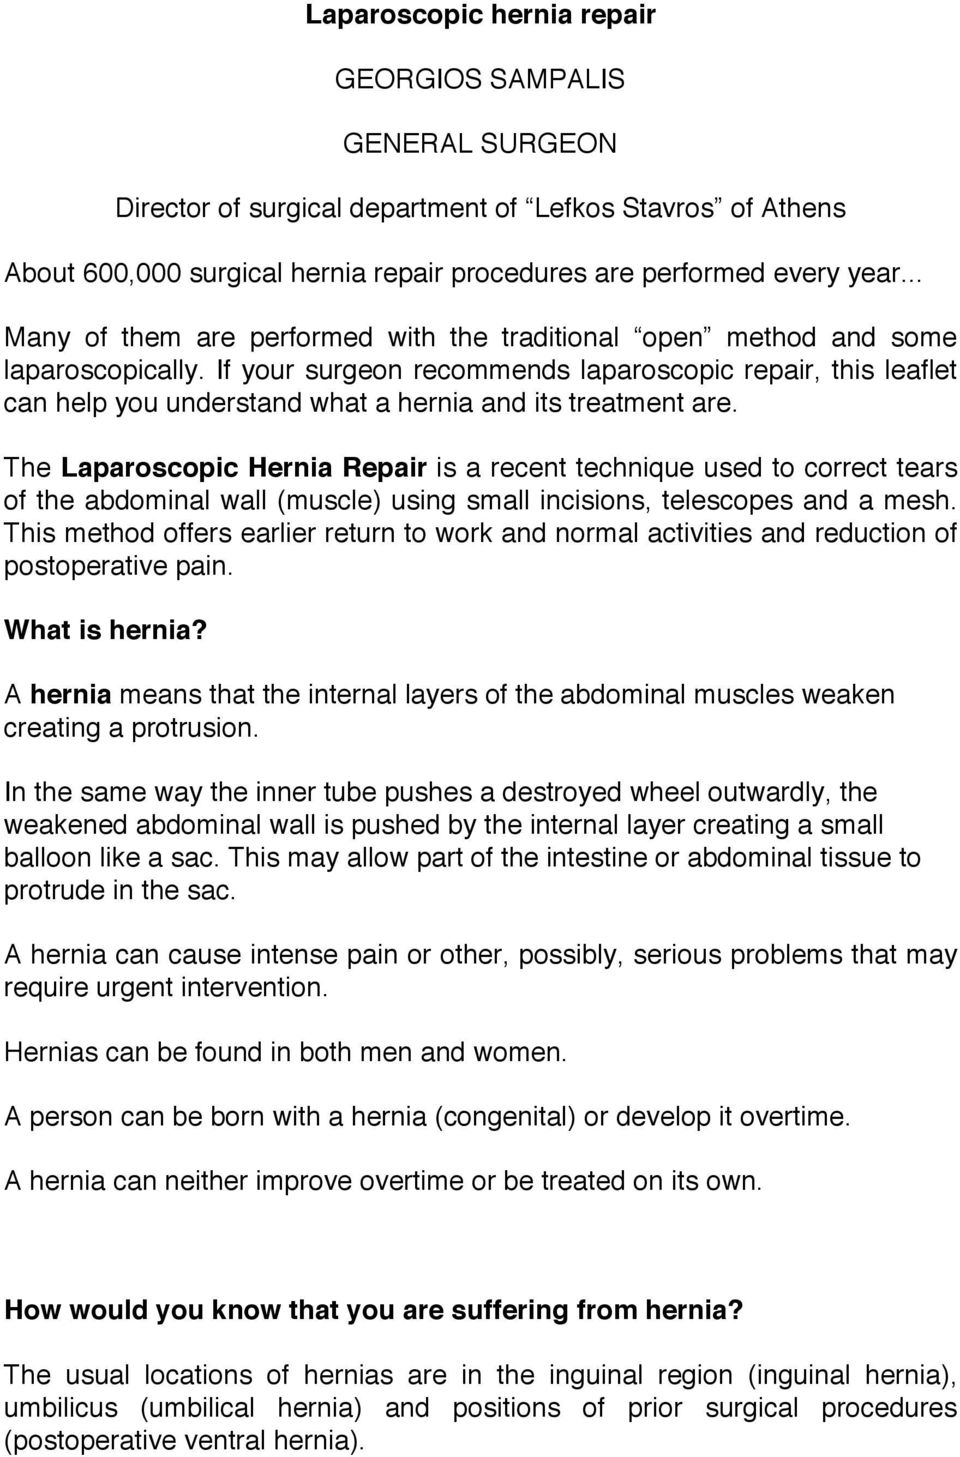 If your surgeon recommends laparoscopic repair, this leaflet can help you understand what a hernia and its treatment are.